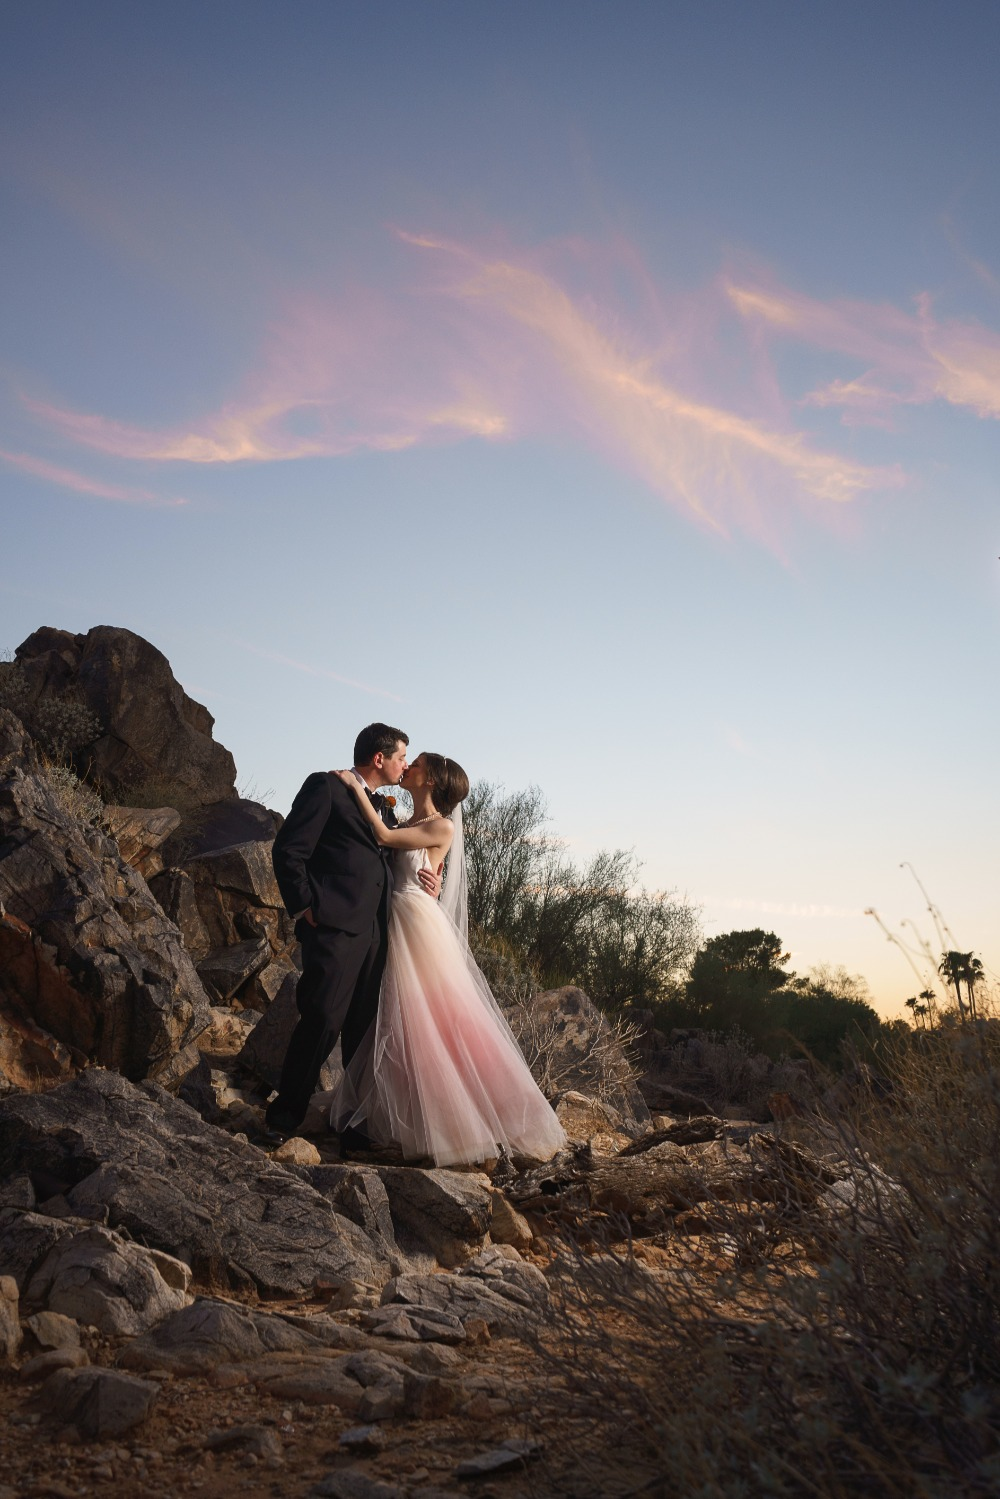 Twilight wedding portrait ideas